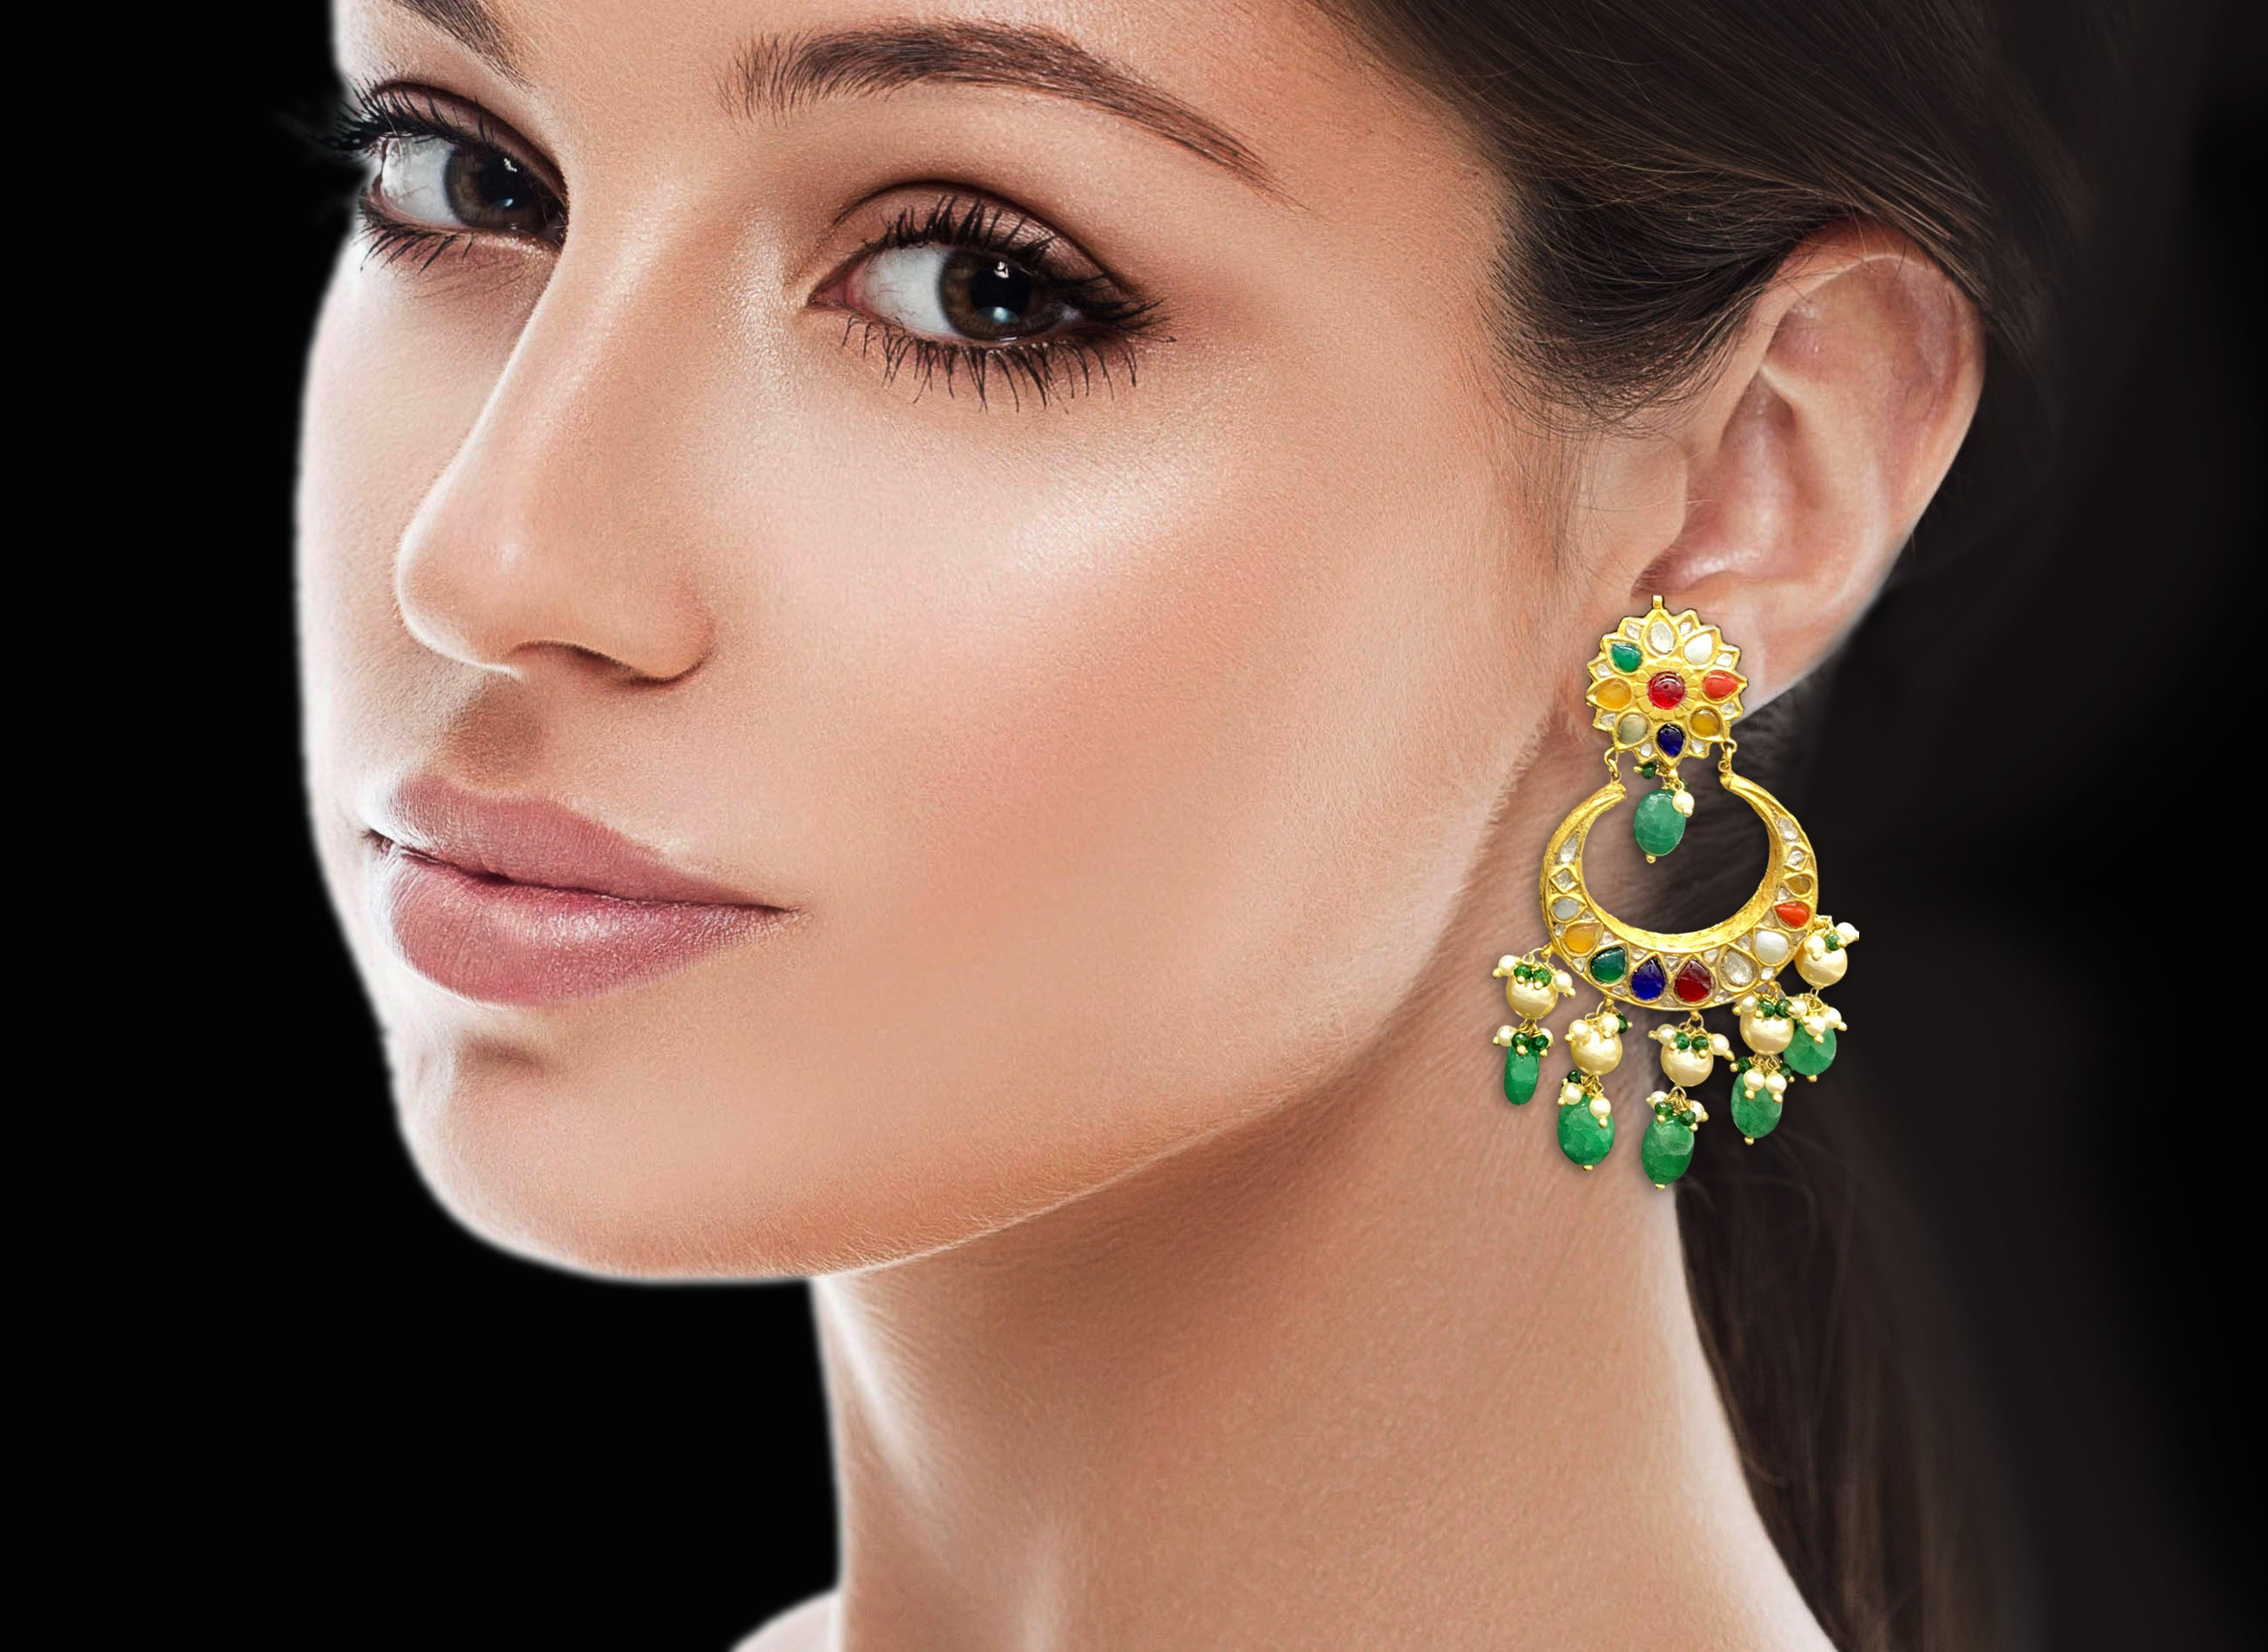 23k Gold and Diamond Polki Chand Bali Earring Pair with Navratan Stones and Green Beryls - G. K. Ratnam